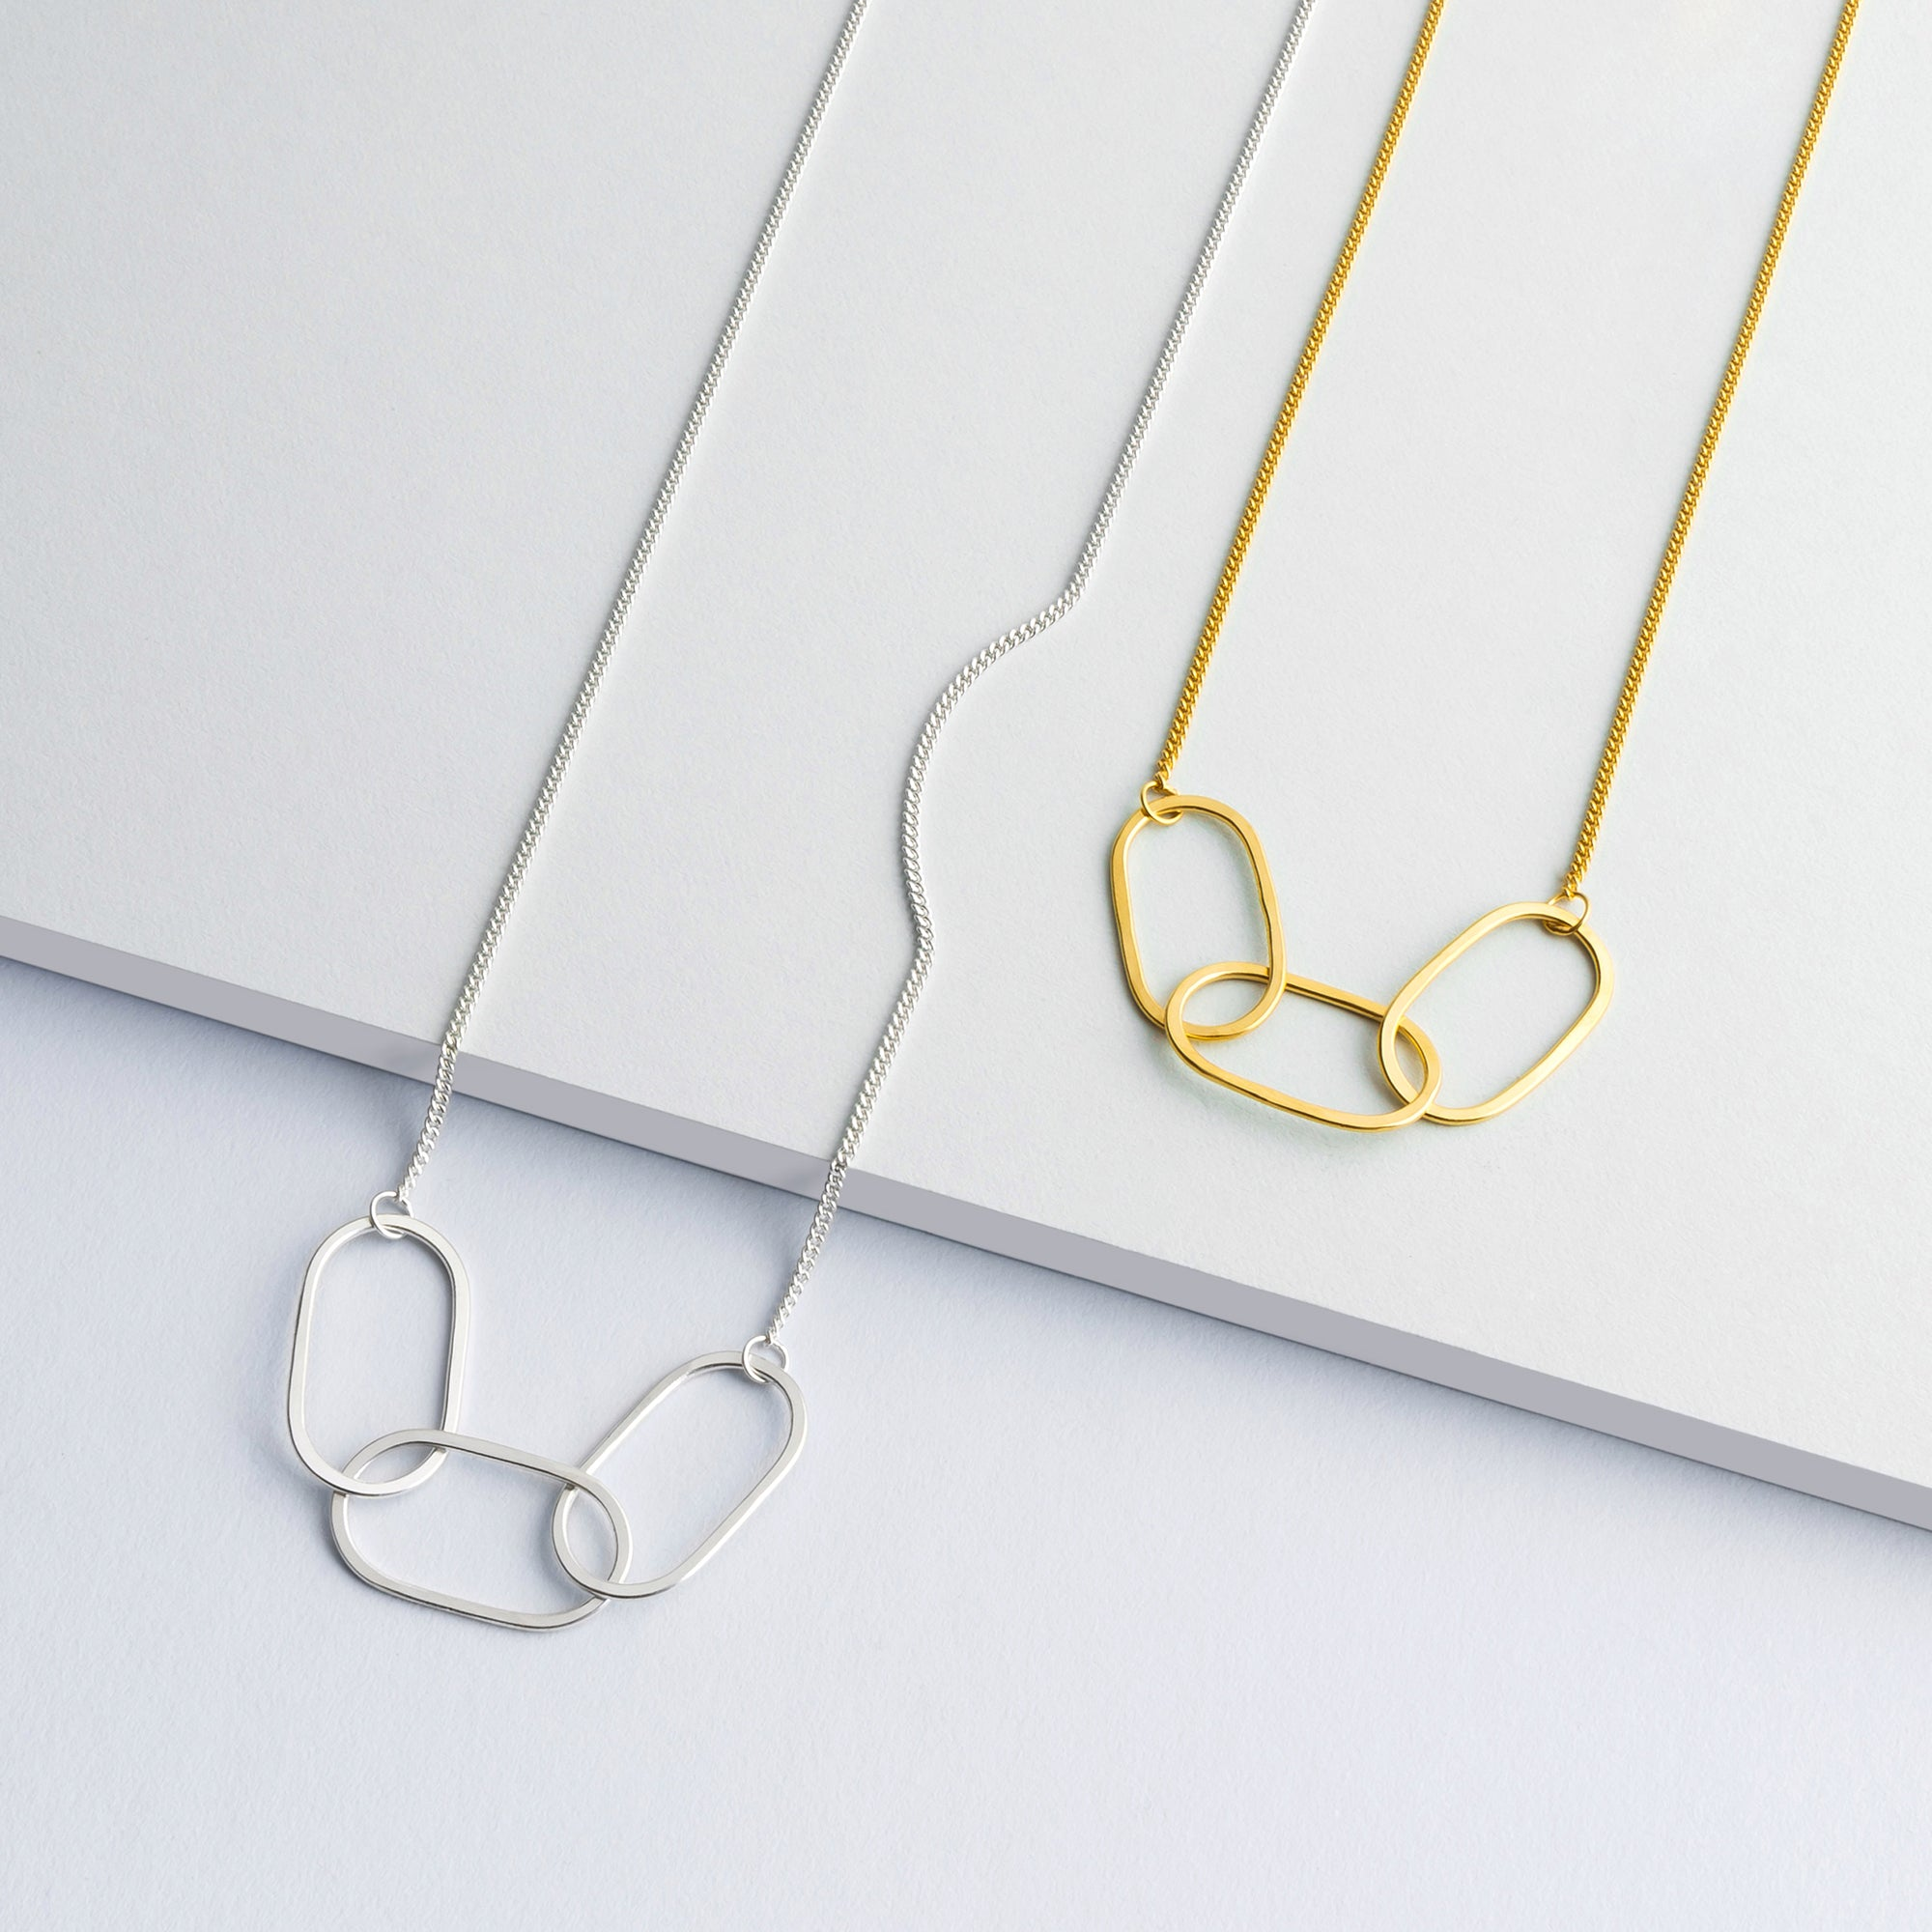 Mini Chain Necklace - Silver